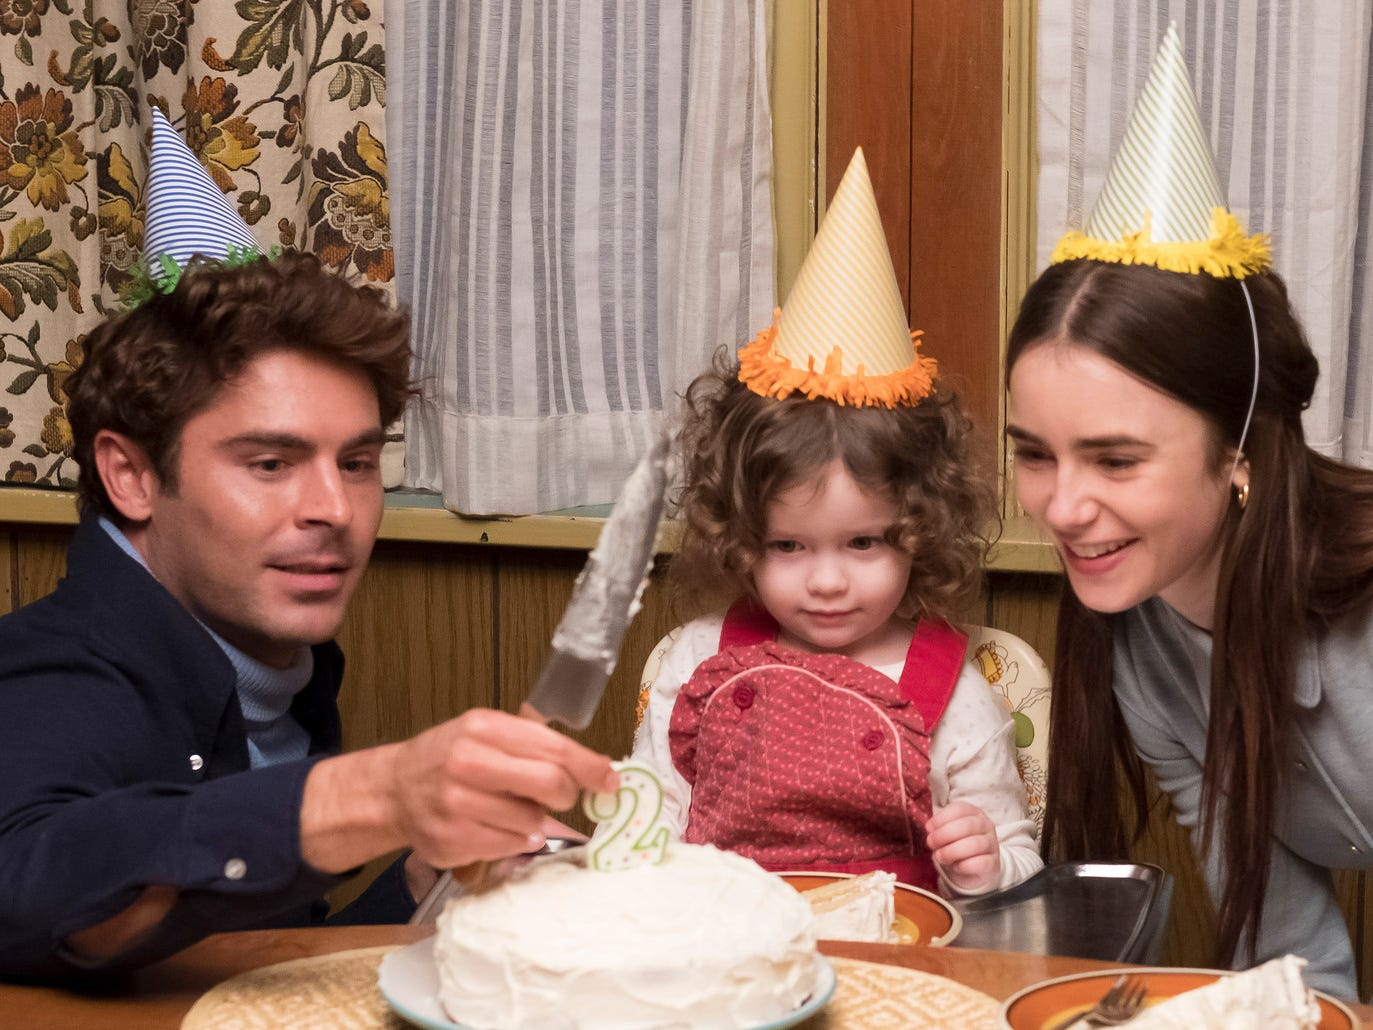 Does Zac Efron movie sexualize serial killer Ted Bundy? Critics are split